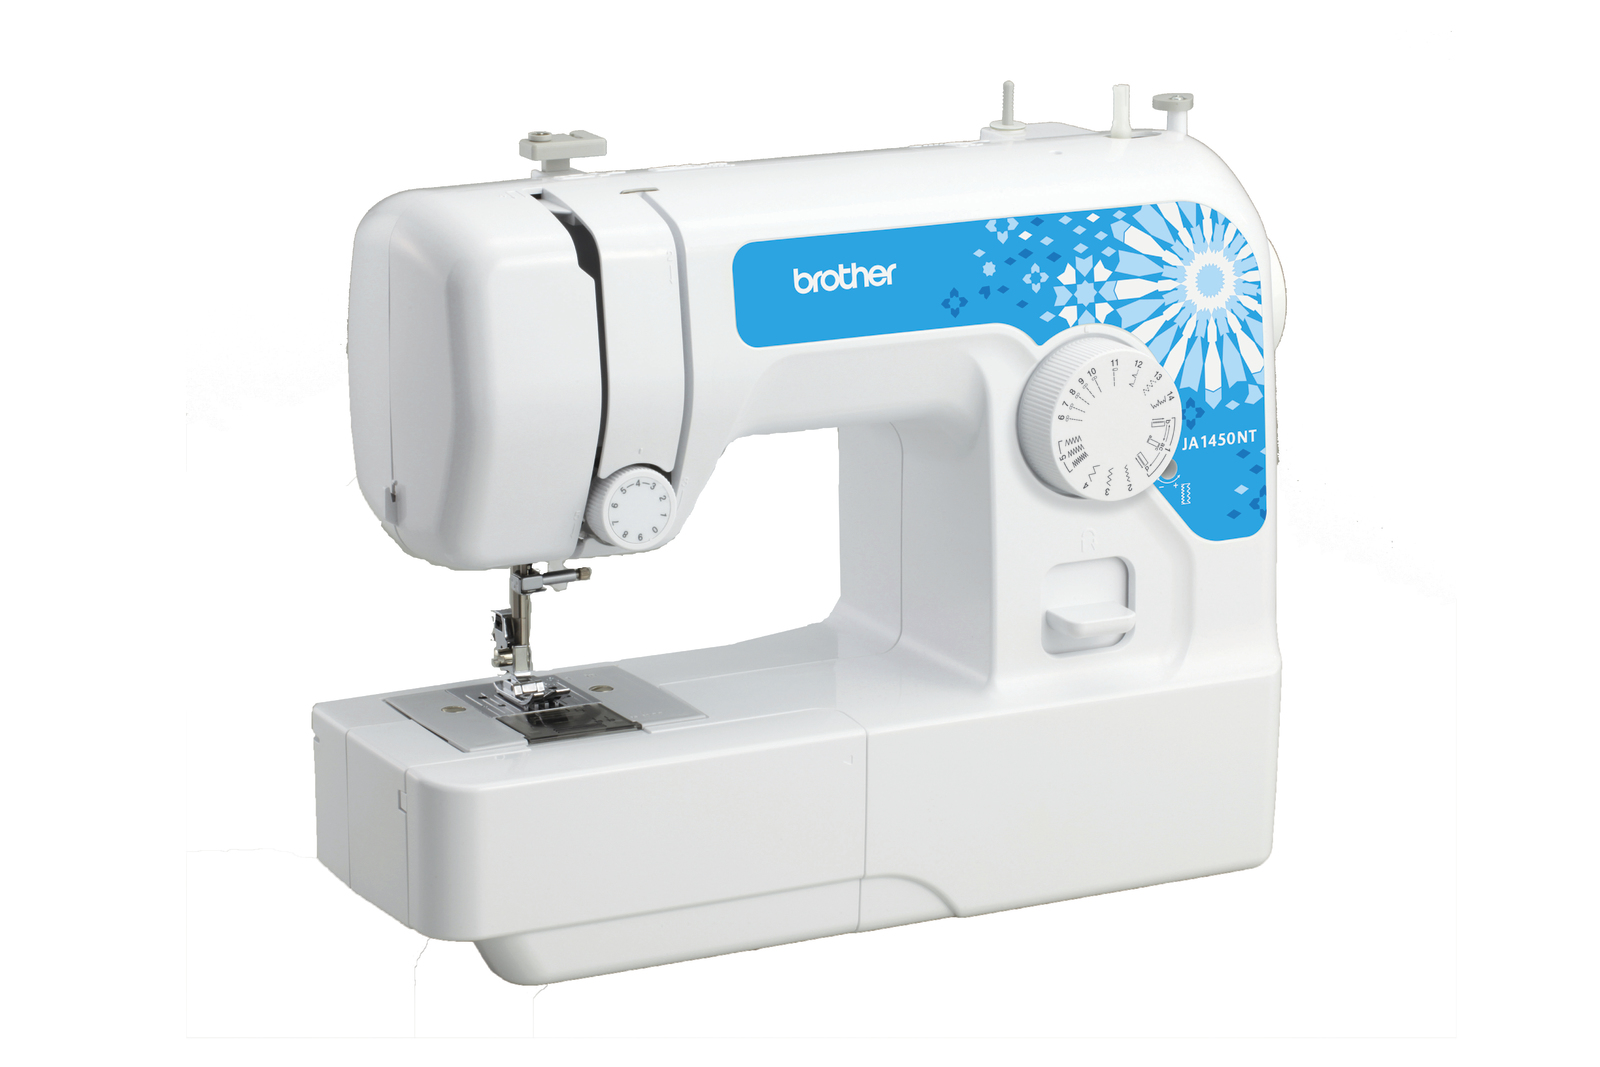 Brother JA1450NT Home Sewing Machine image